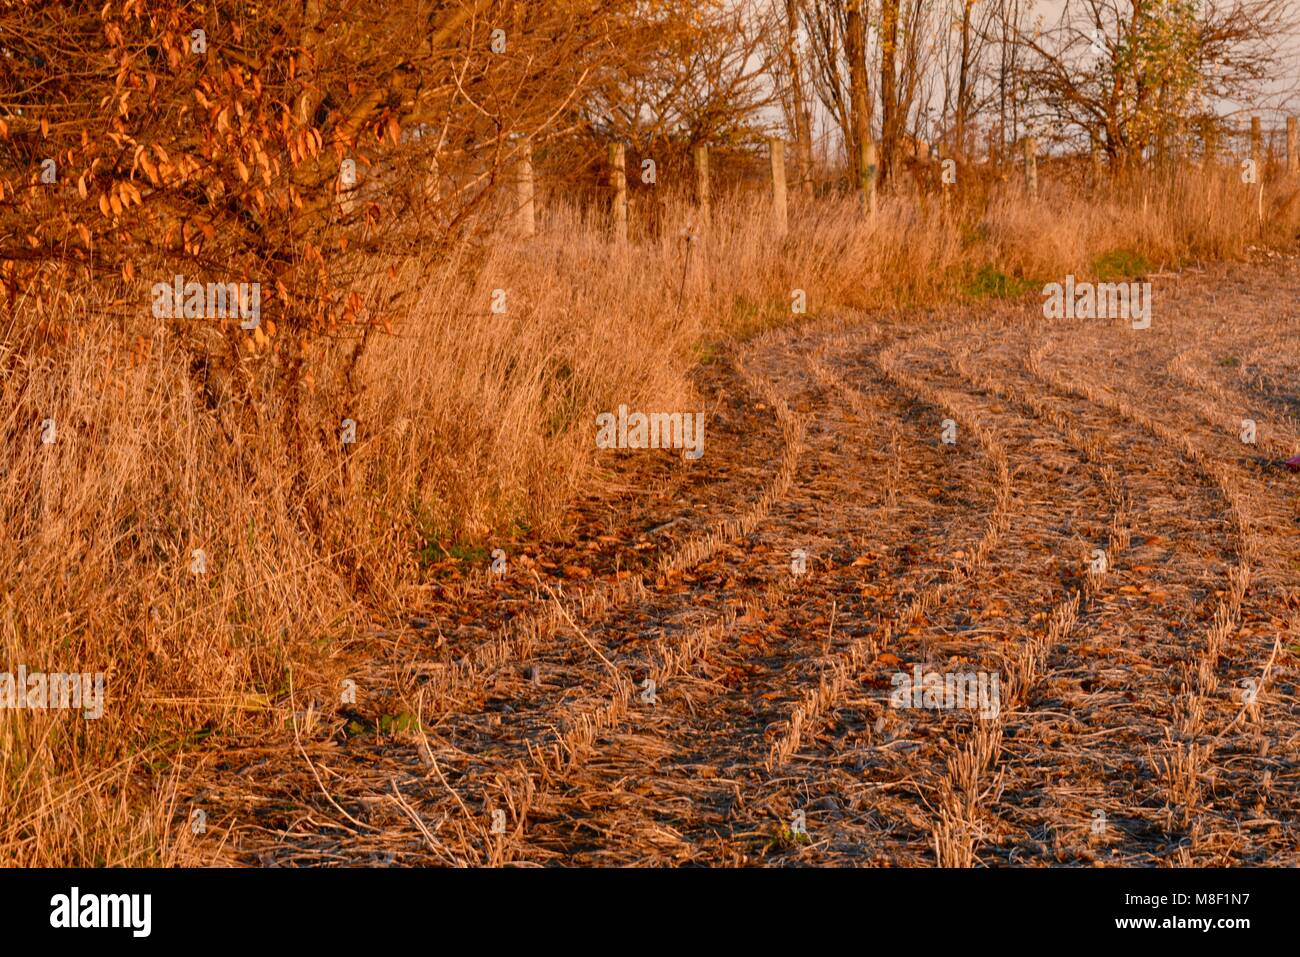 Remaining corn stalk stubble in fall after end of season harvest, at golden sunset in a corn field edge and fence, - Stock Image